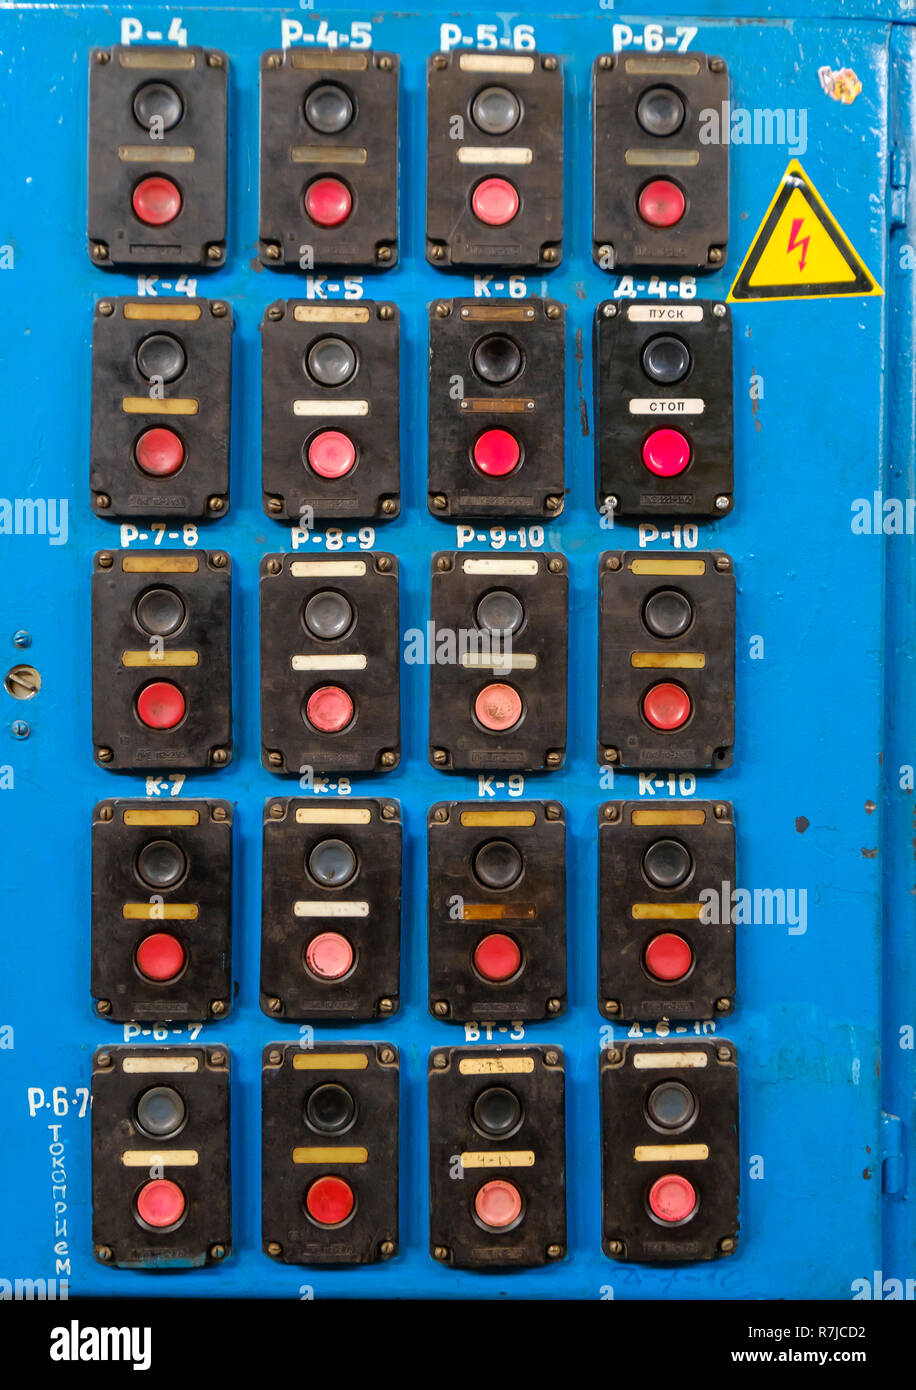 electrical toggle switch industrial - Stock Image